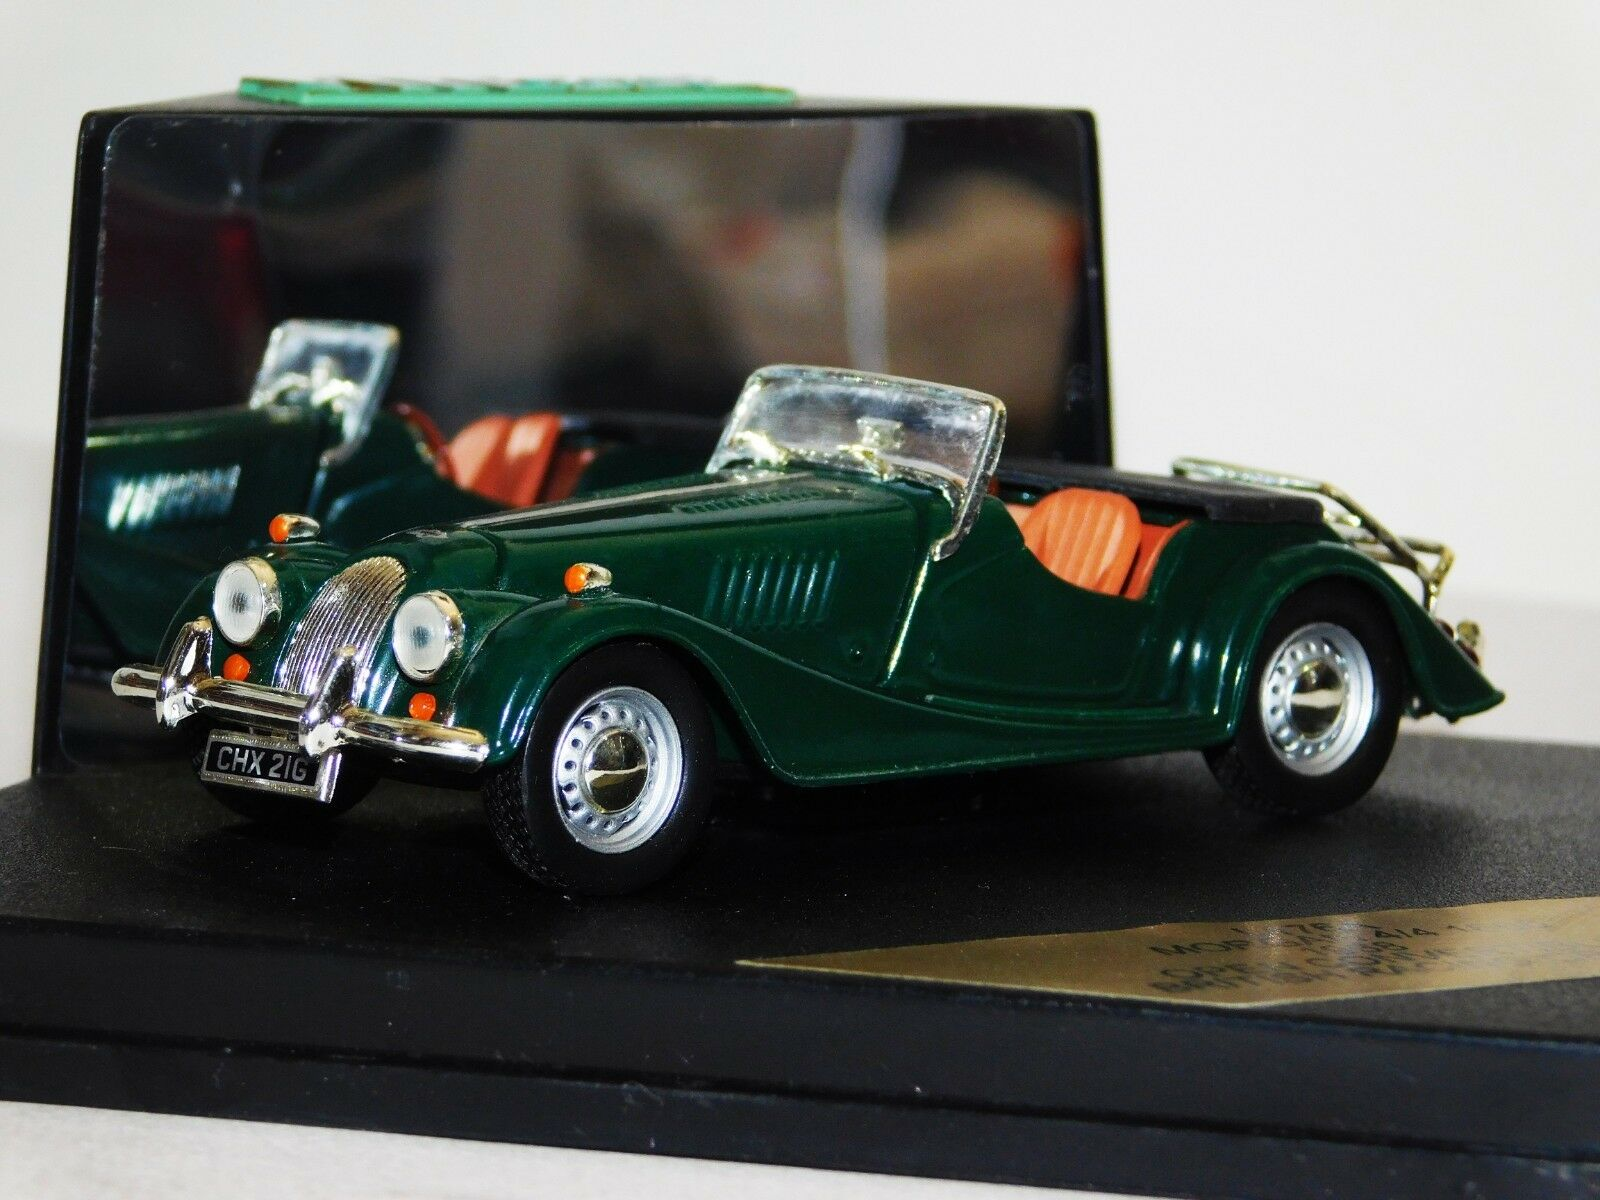 MORGAN 4 4 1600 1968 OPEN OPEN OPEN CONgreenIBLE BRITISH RACING GREEN VITESSE L176A 1 43 14e3af